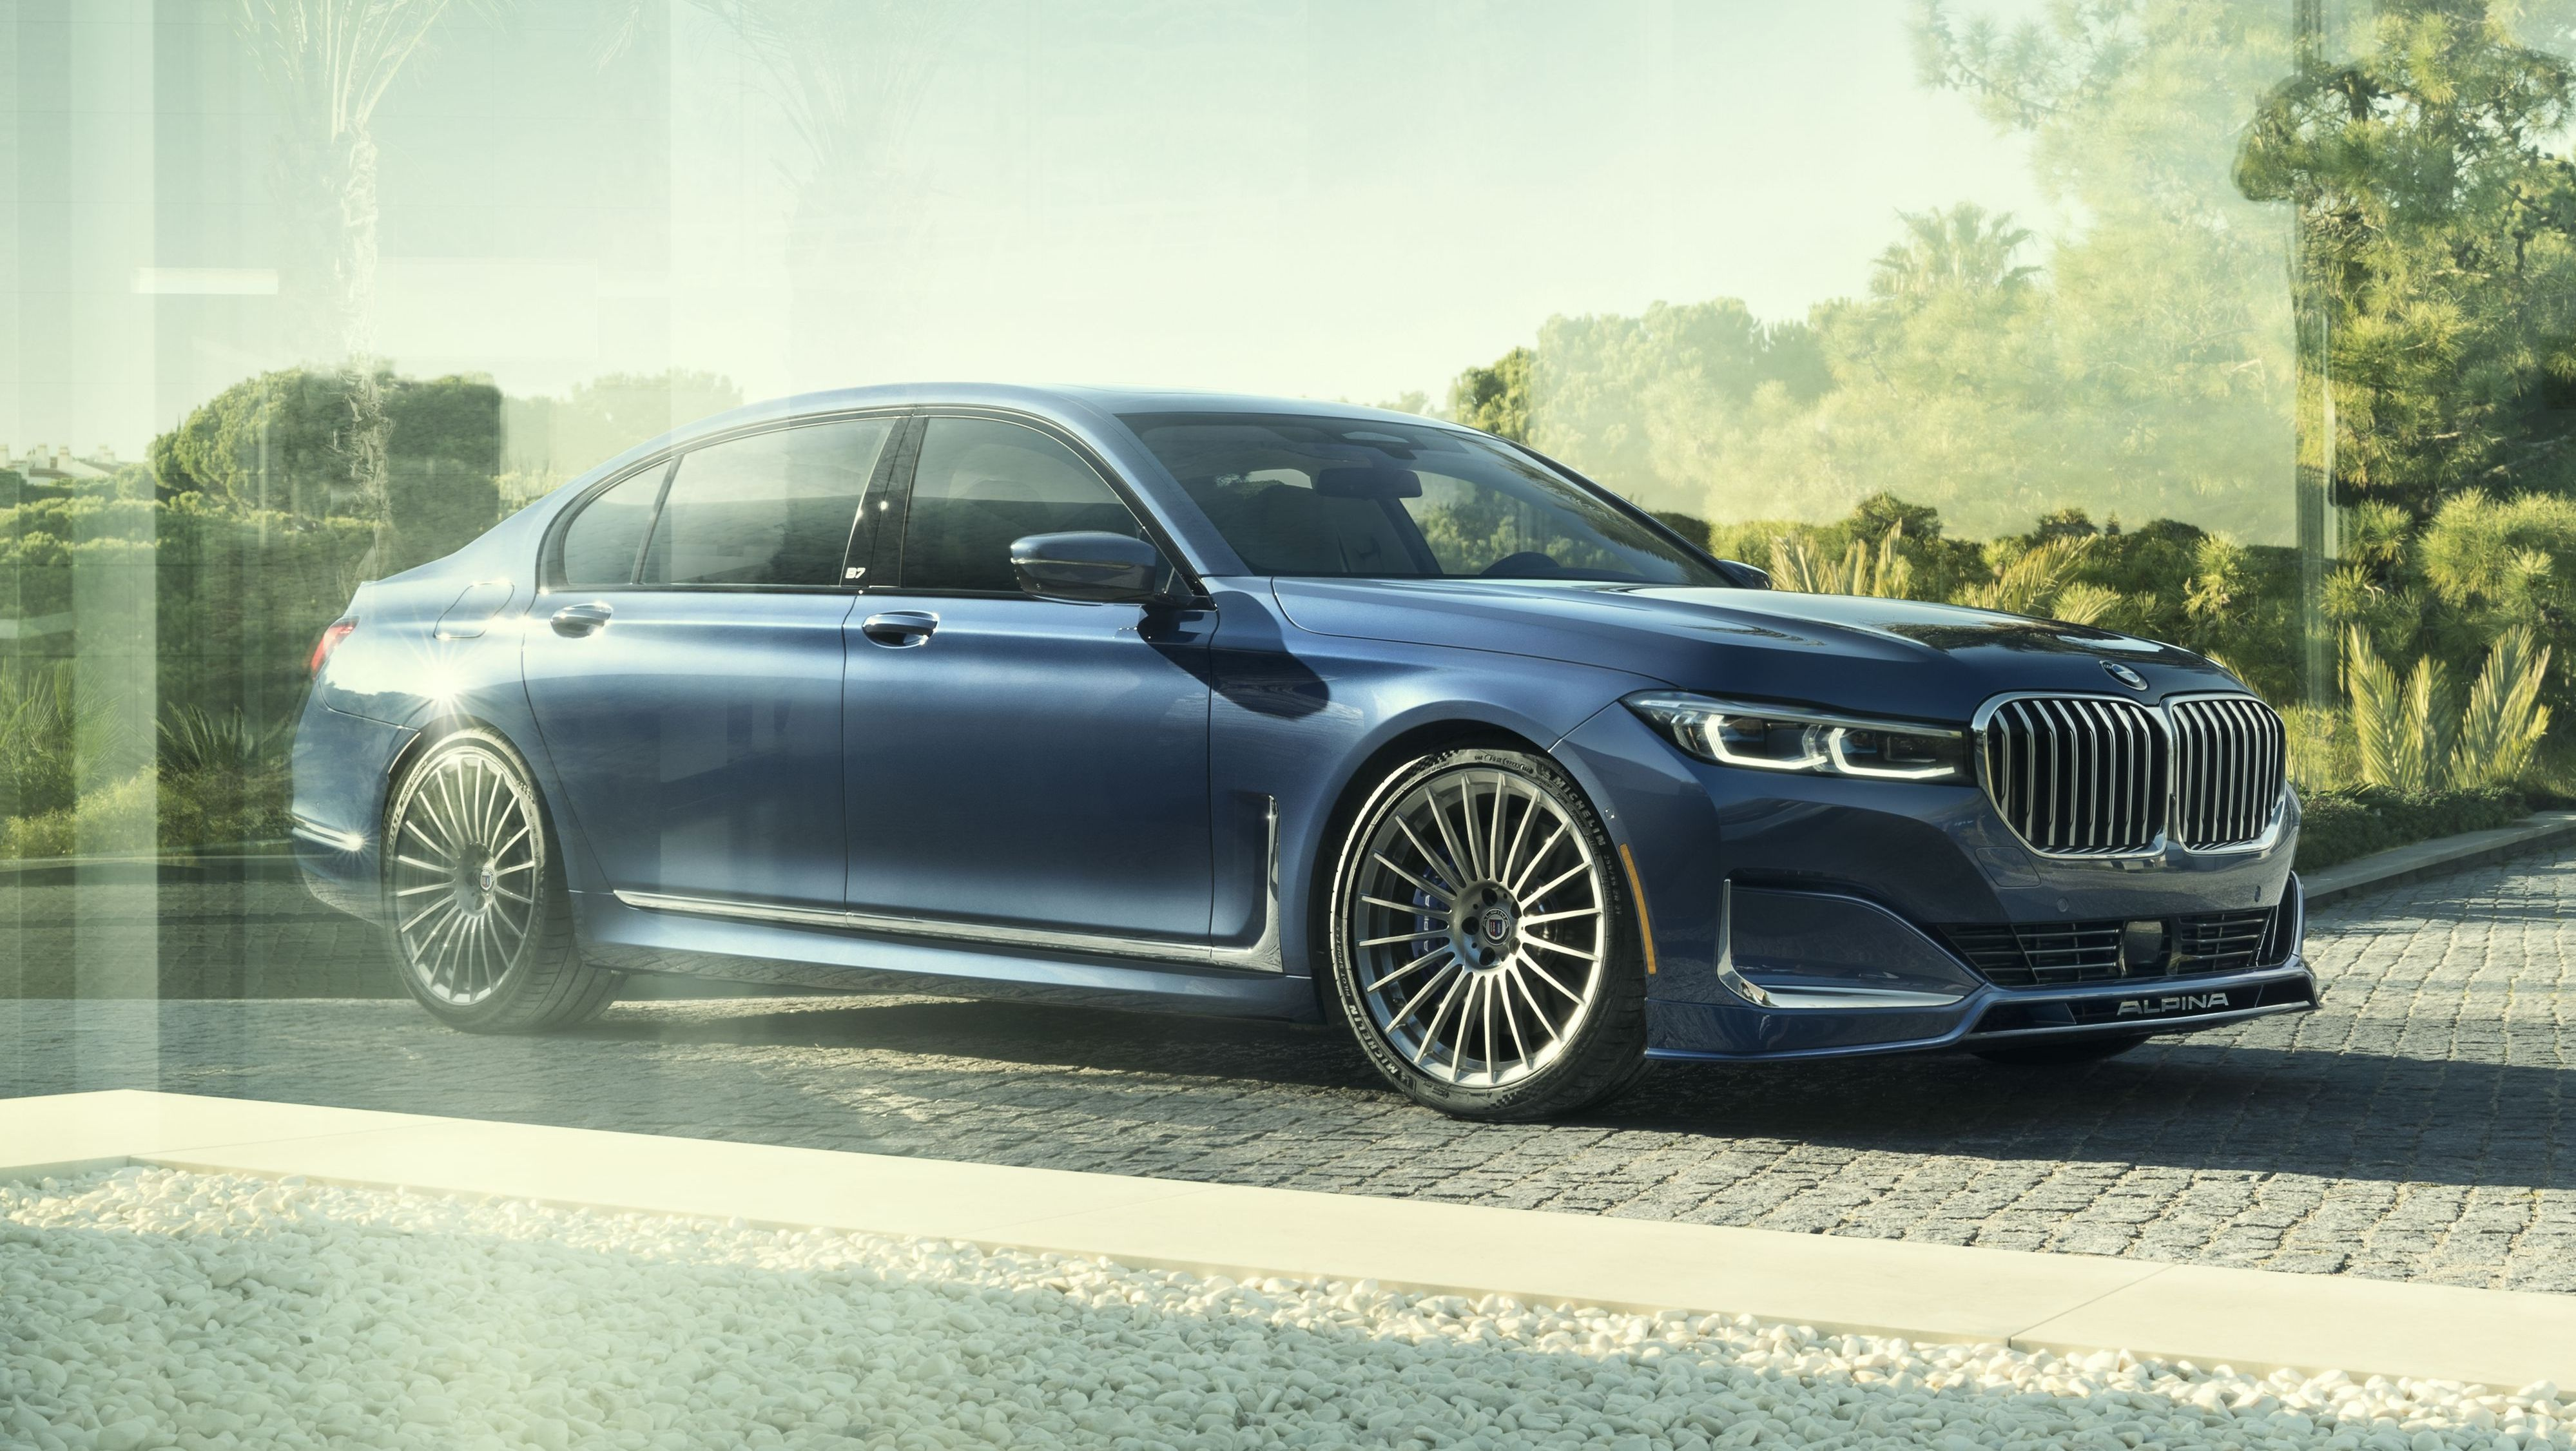 2020 Alpina B7 Xdrive Sedan Bmw Bmw Series Bmw 7 Series